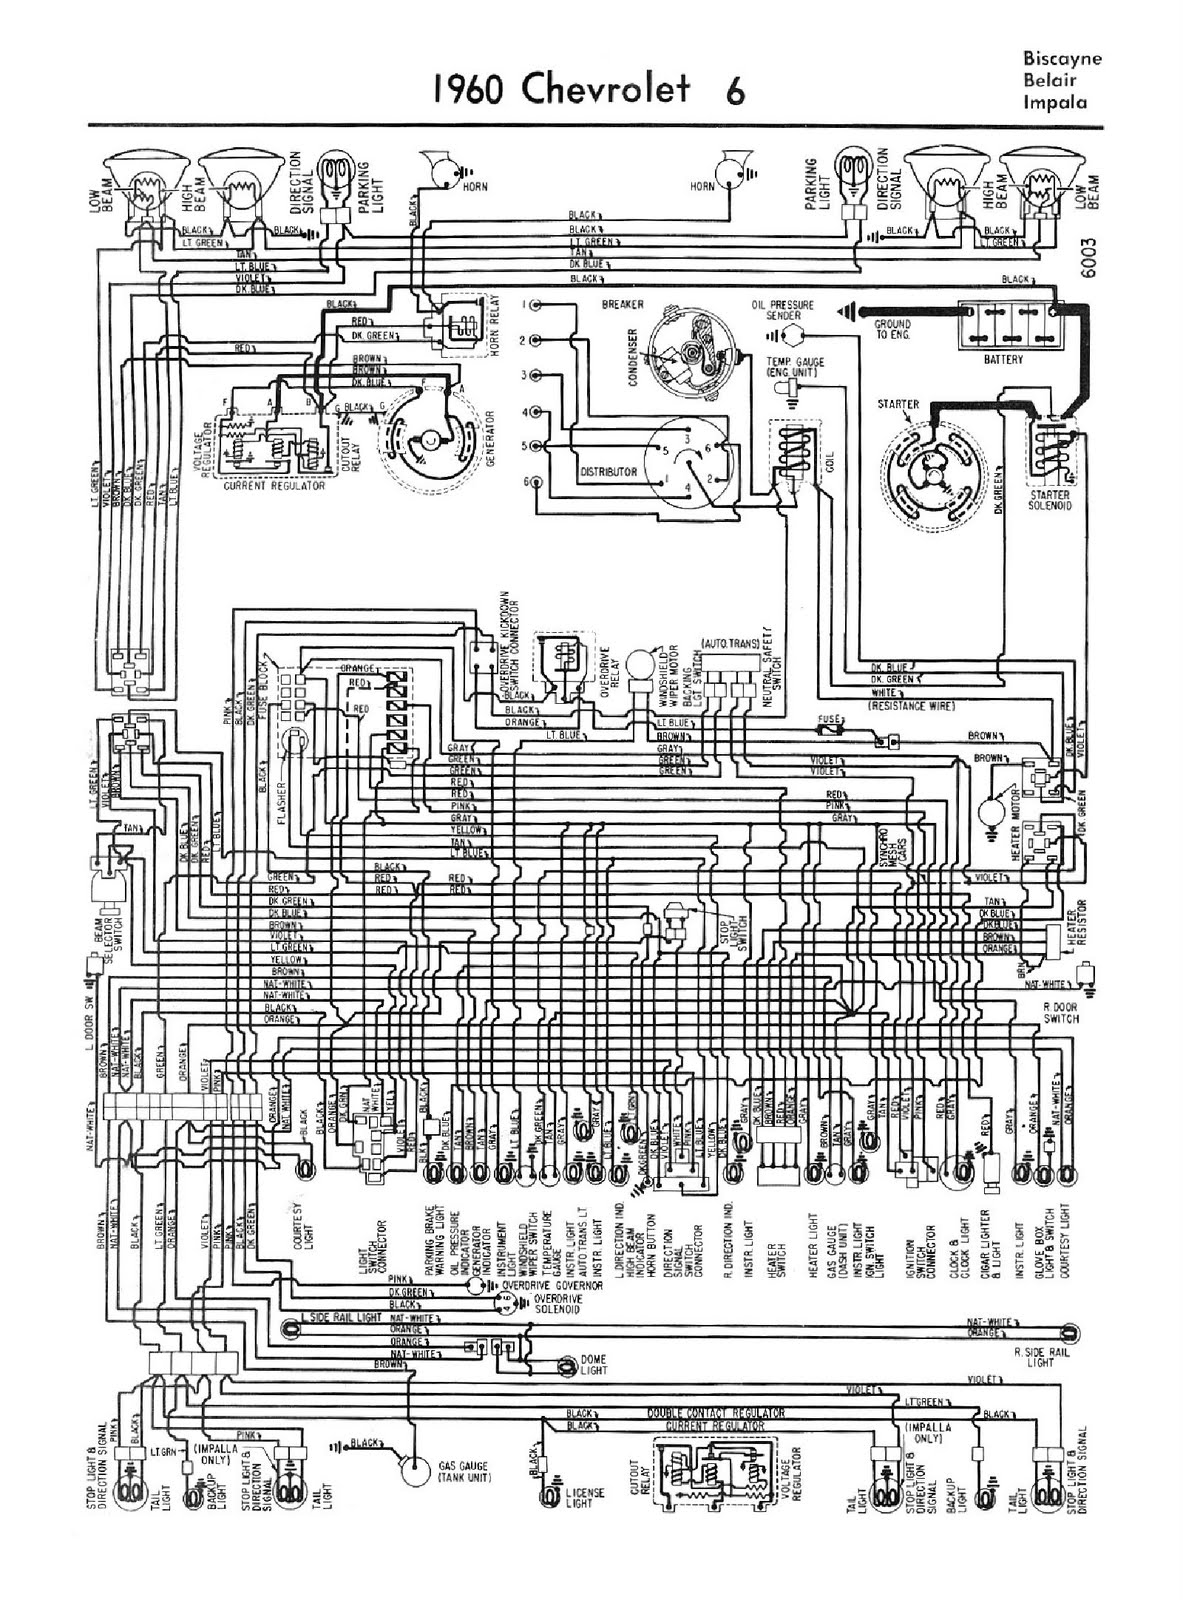 1964 chevrolet truck wiring diagrams kubota bx2200 diagram chevy fuse box free image